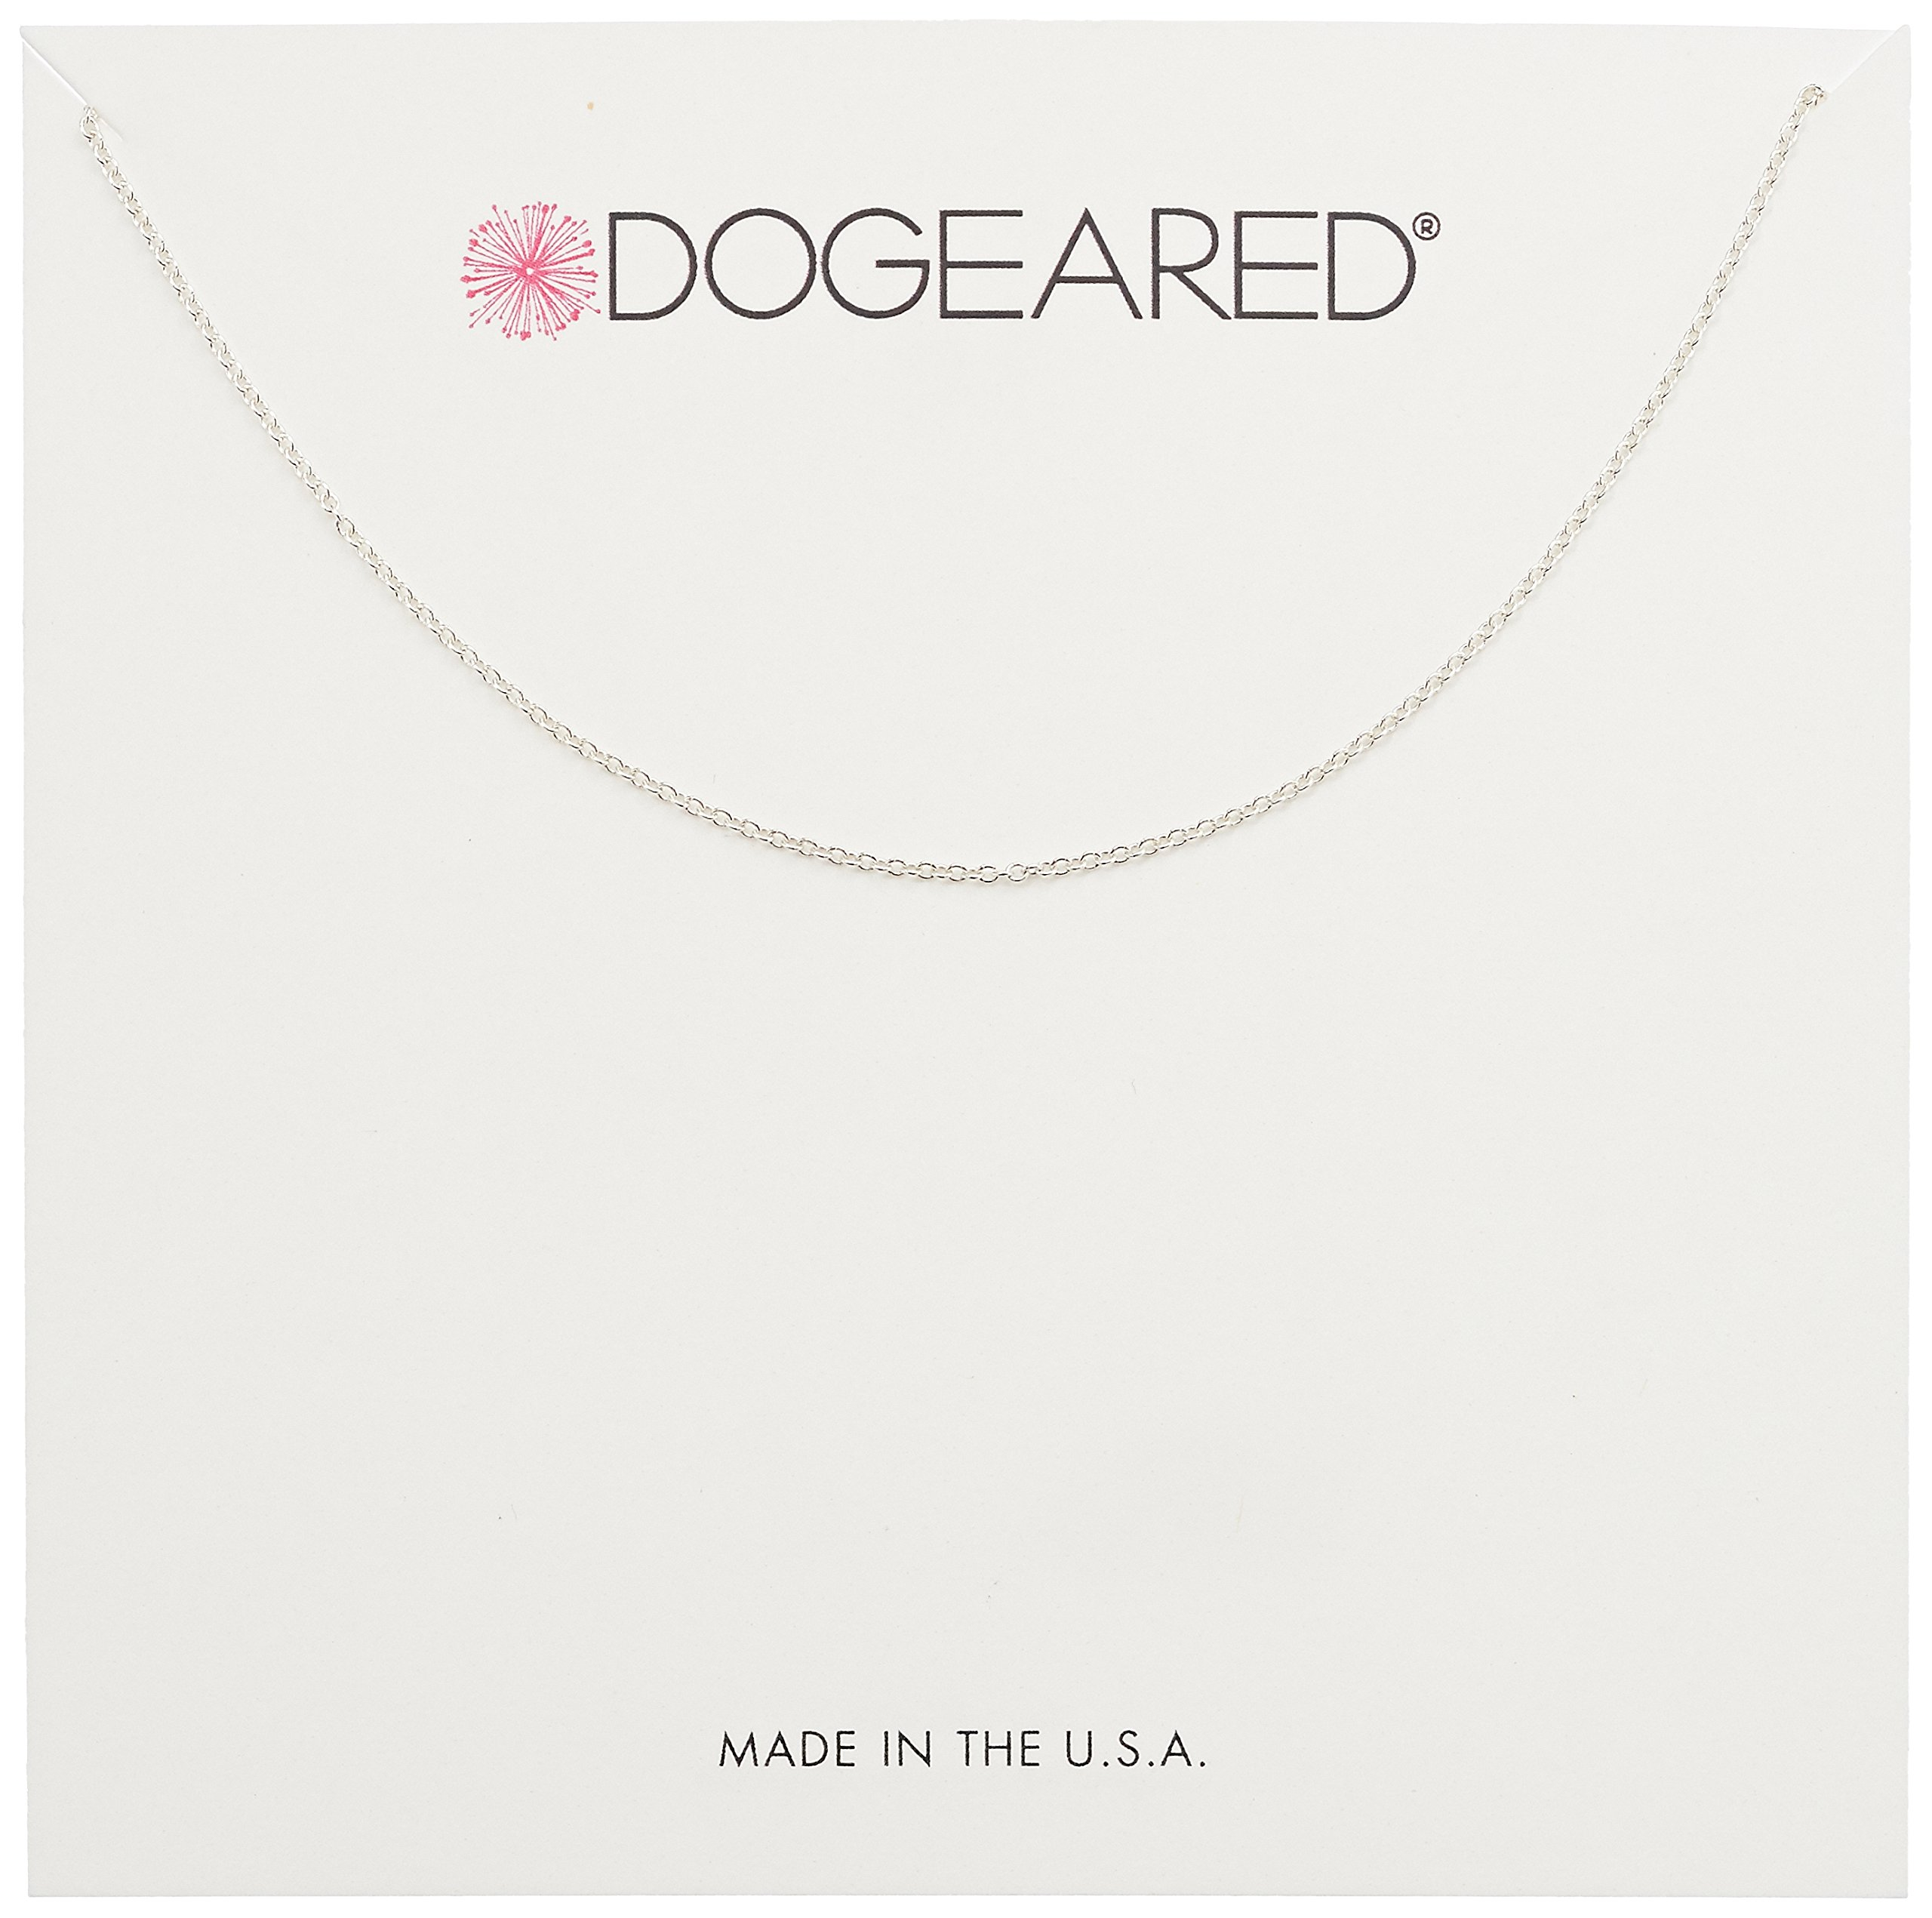 Dogeared Superfine Replacement Chain, 16'' + 2'' Extension, 0.925 Sterling Silver by Dogeared (Image #1)